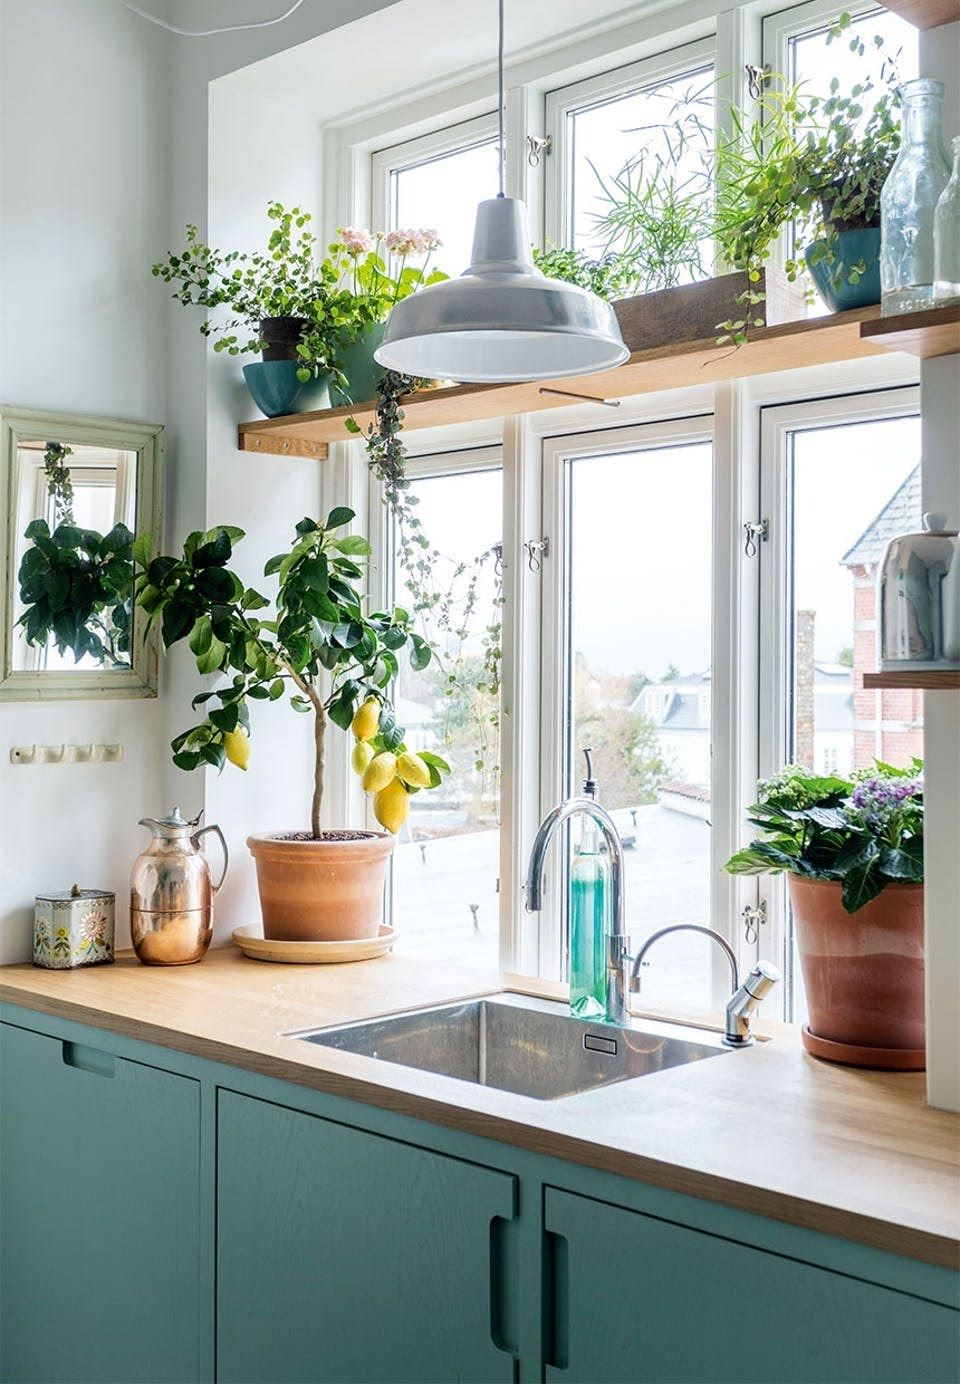 Kitchen window over sink  ium outside looking in  heart of the home kitchen home decor